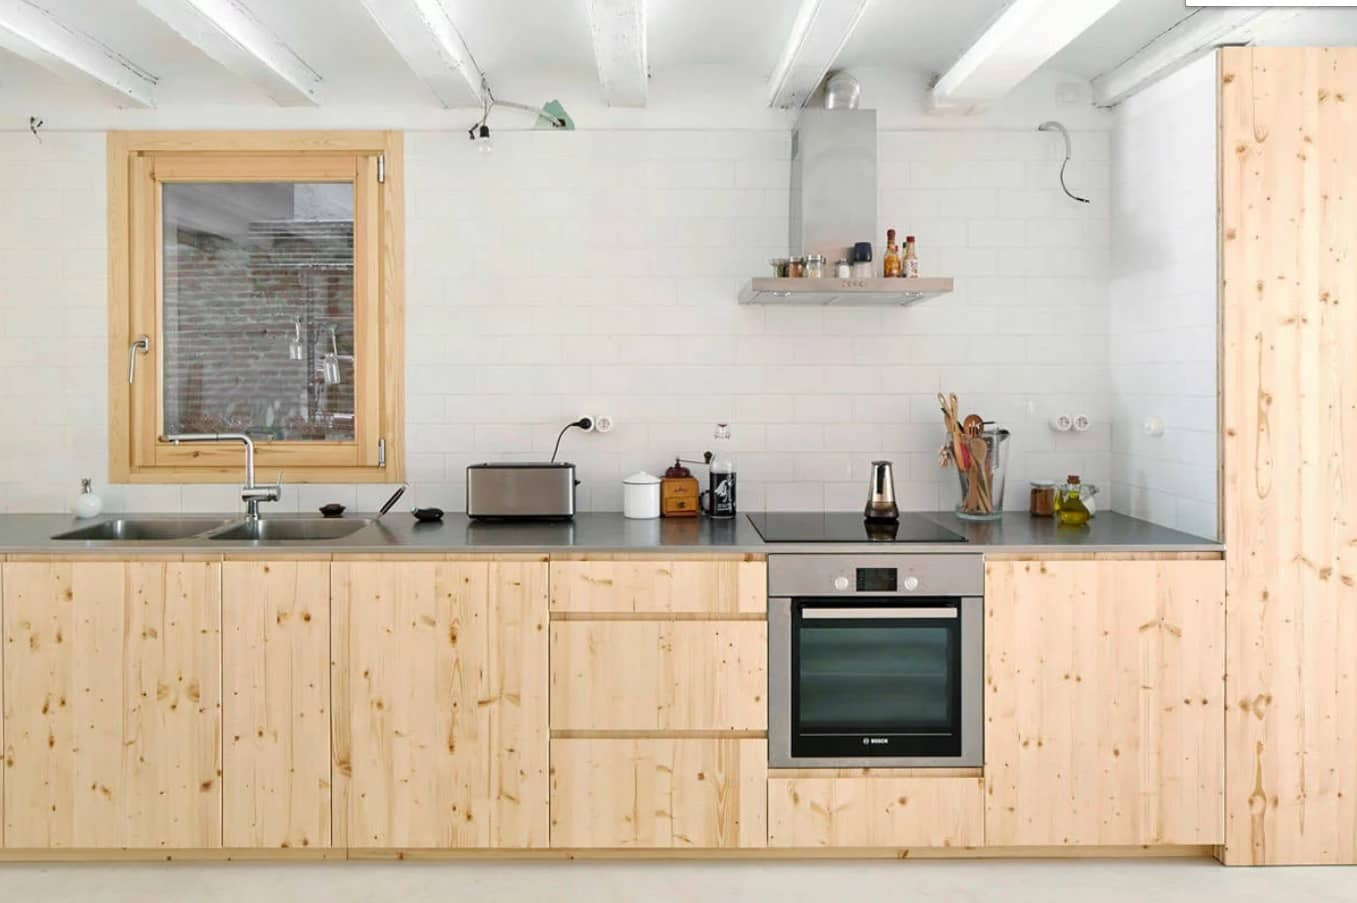 Things to Consider when Renovating A Home. Enrepeatable DIY wooden kitchen facades ideawith untreated surface